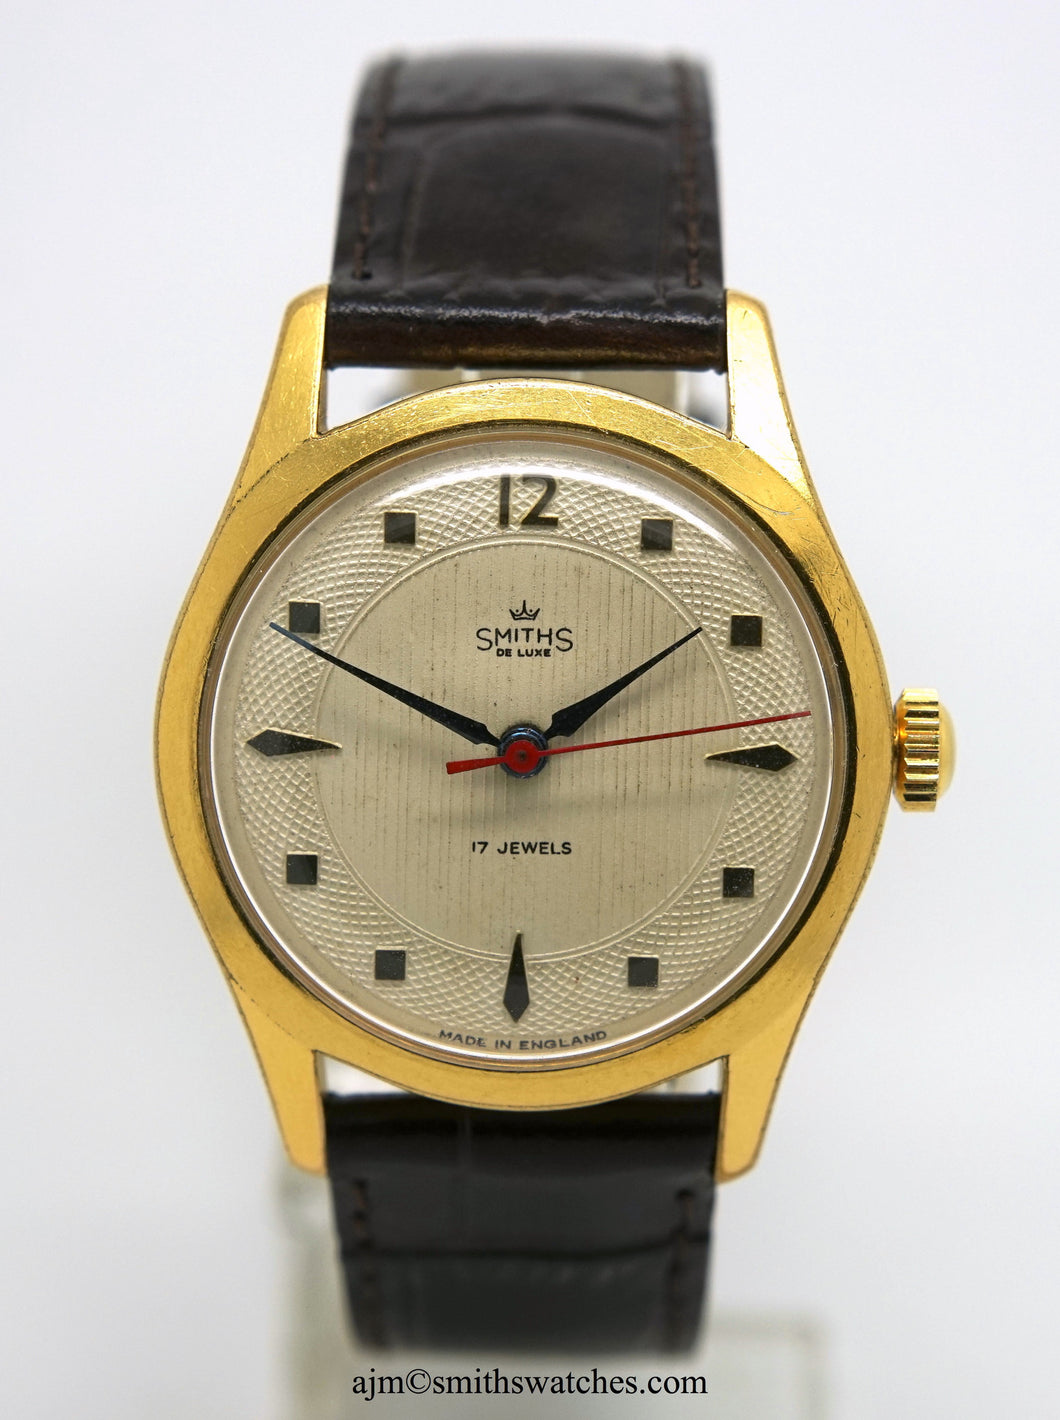 DELUXE SMITHS GENTS DUSTPROOF WATCH C 1958 FULLY SERVICED AB377